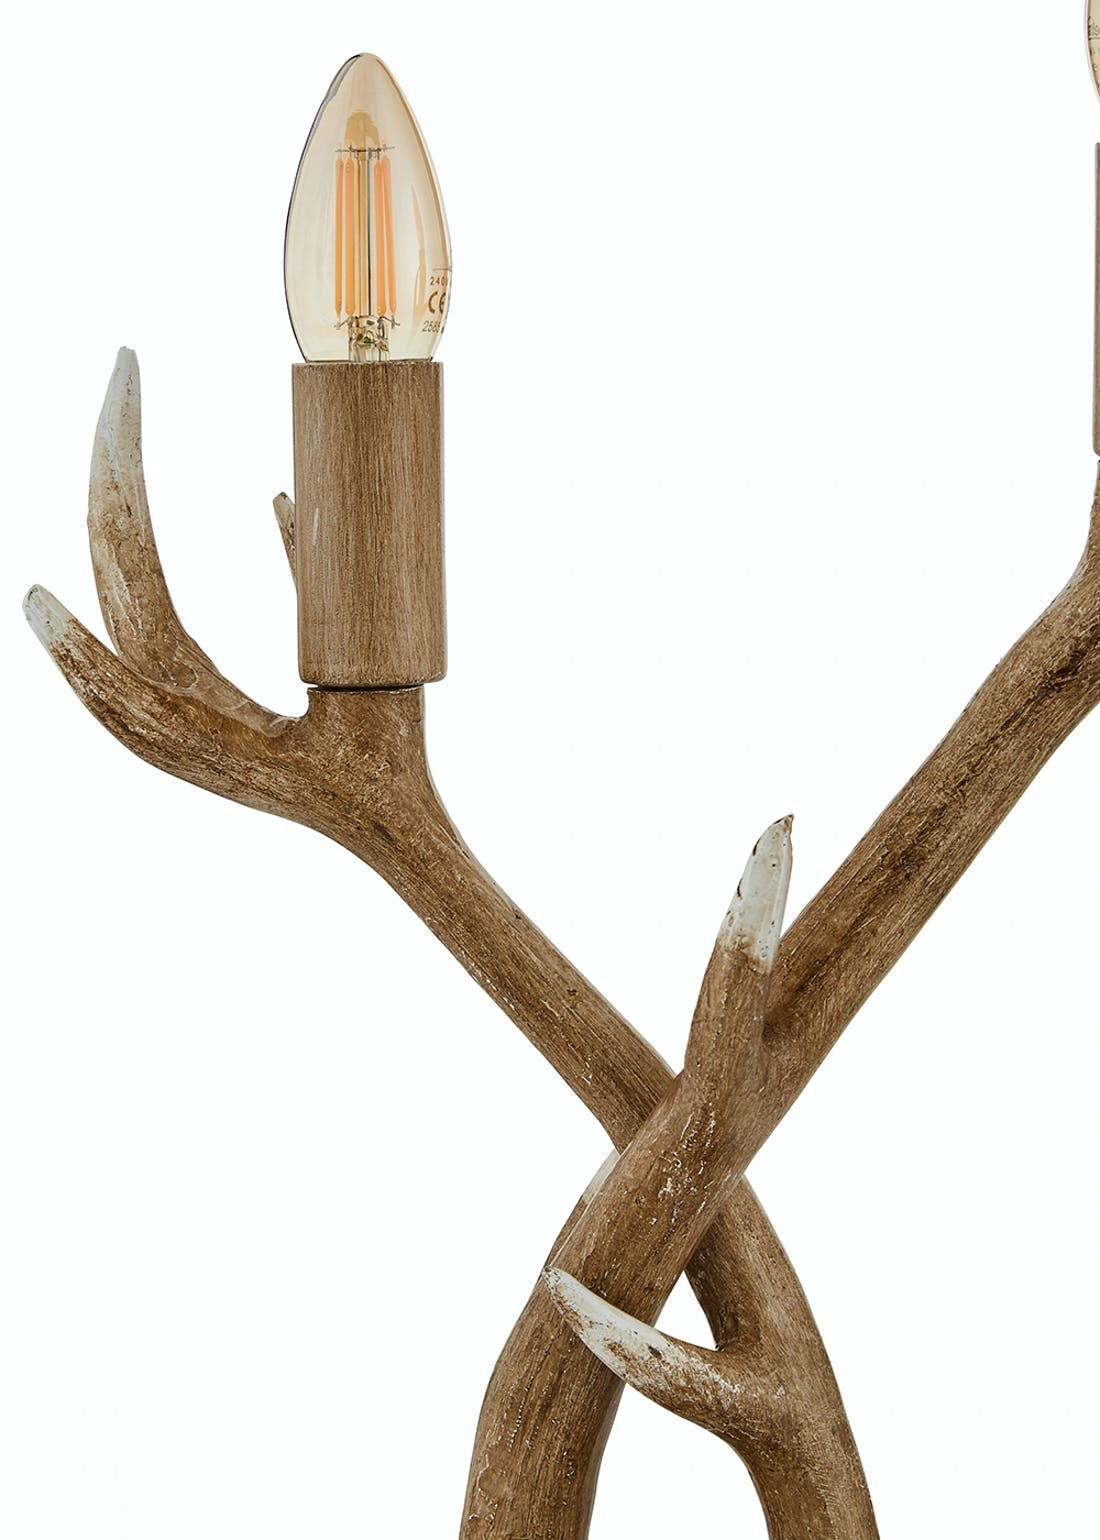 Antler Table Lamp (H39cm x W26cm x D13.5cm)